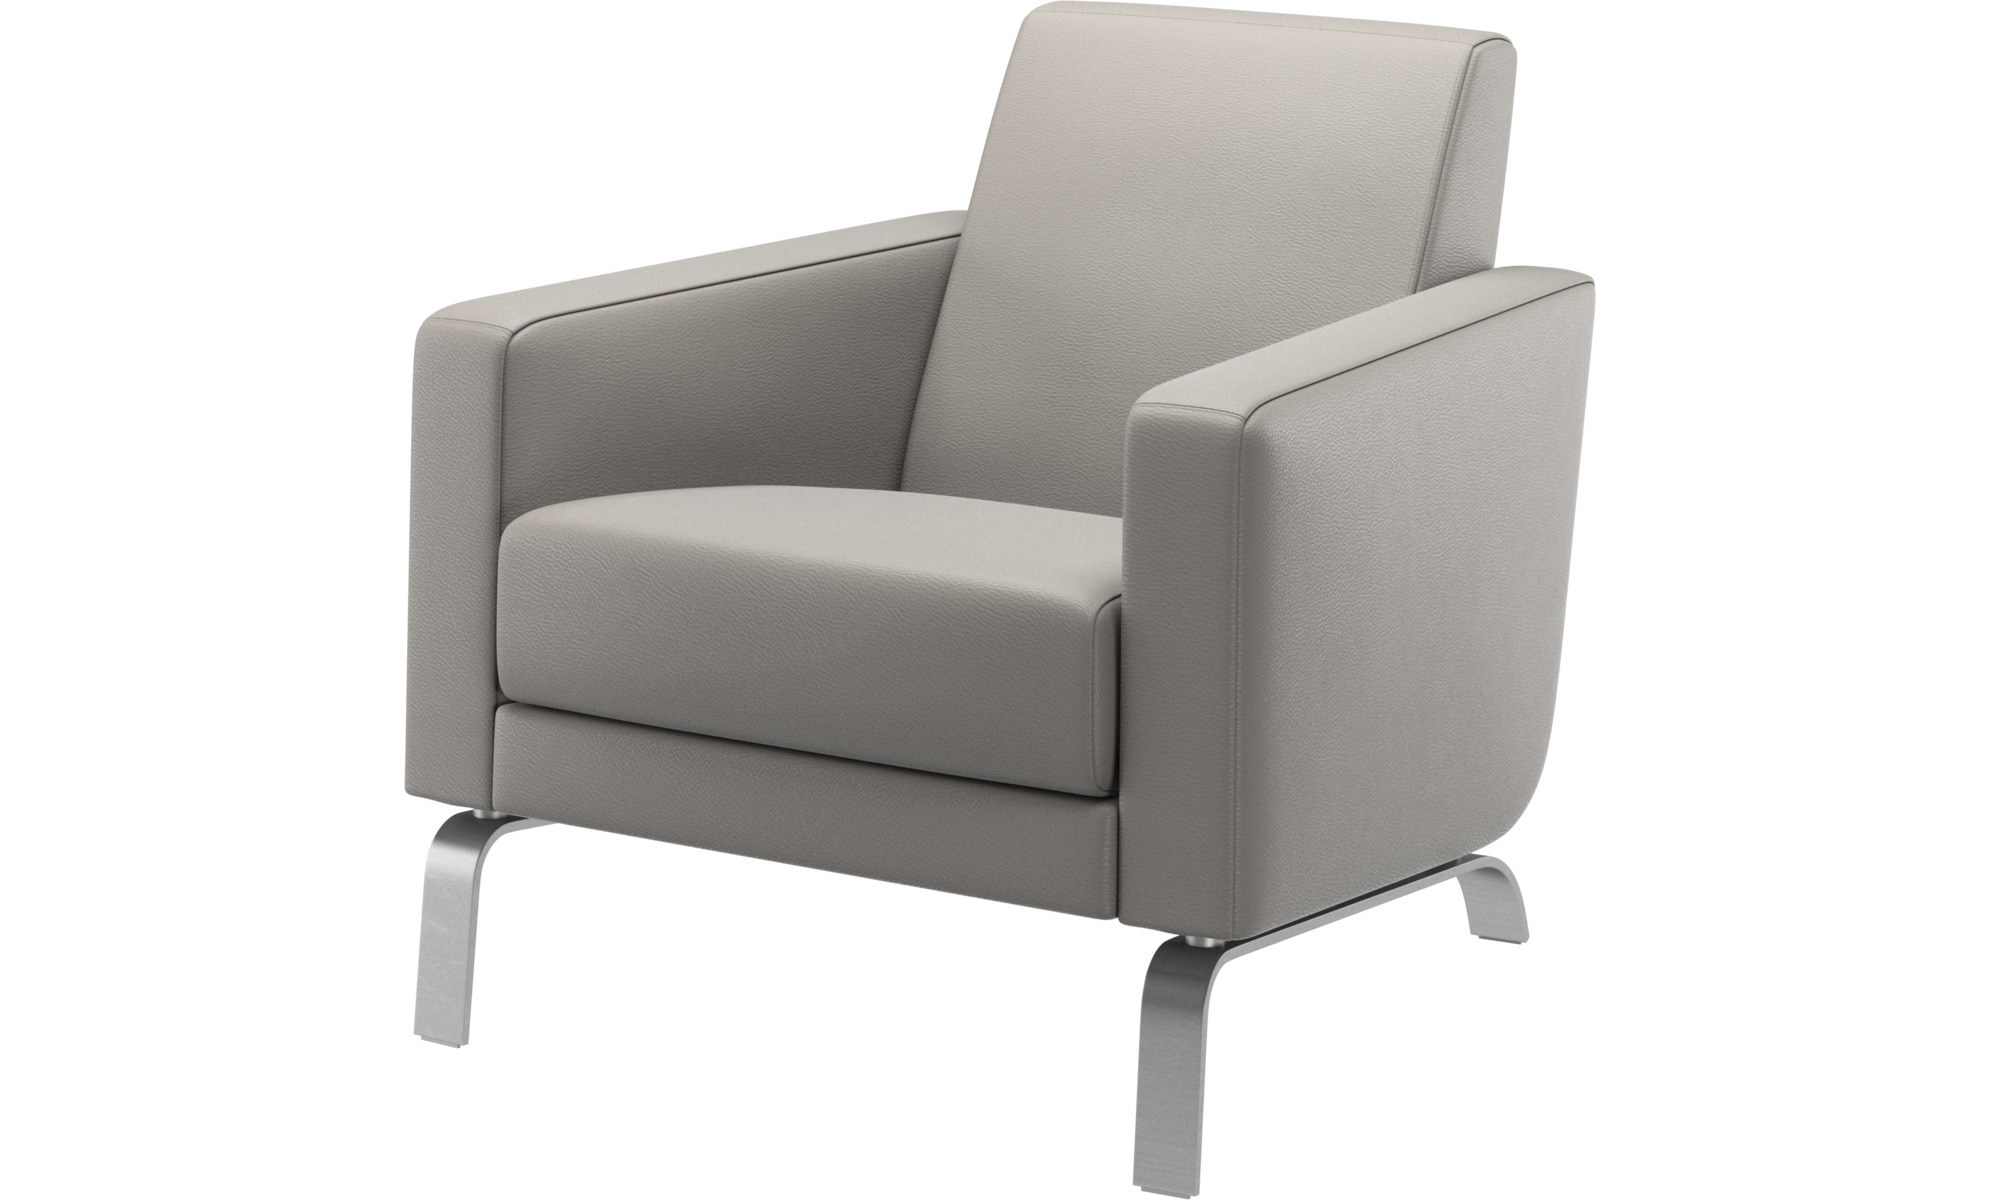 Designs By Frans Schrofer Fly Chair Boconcept